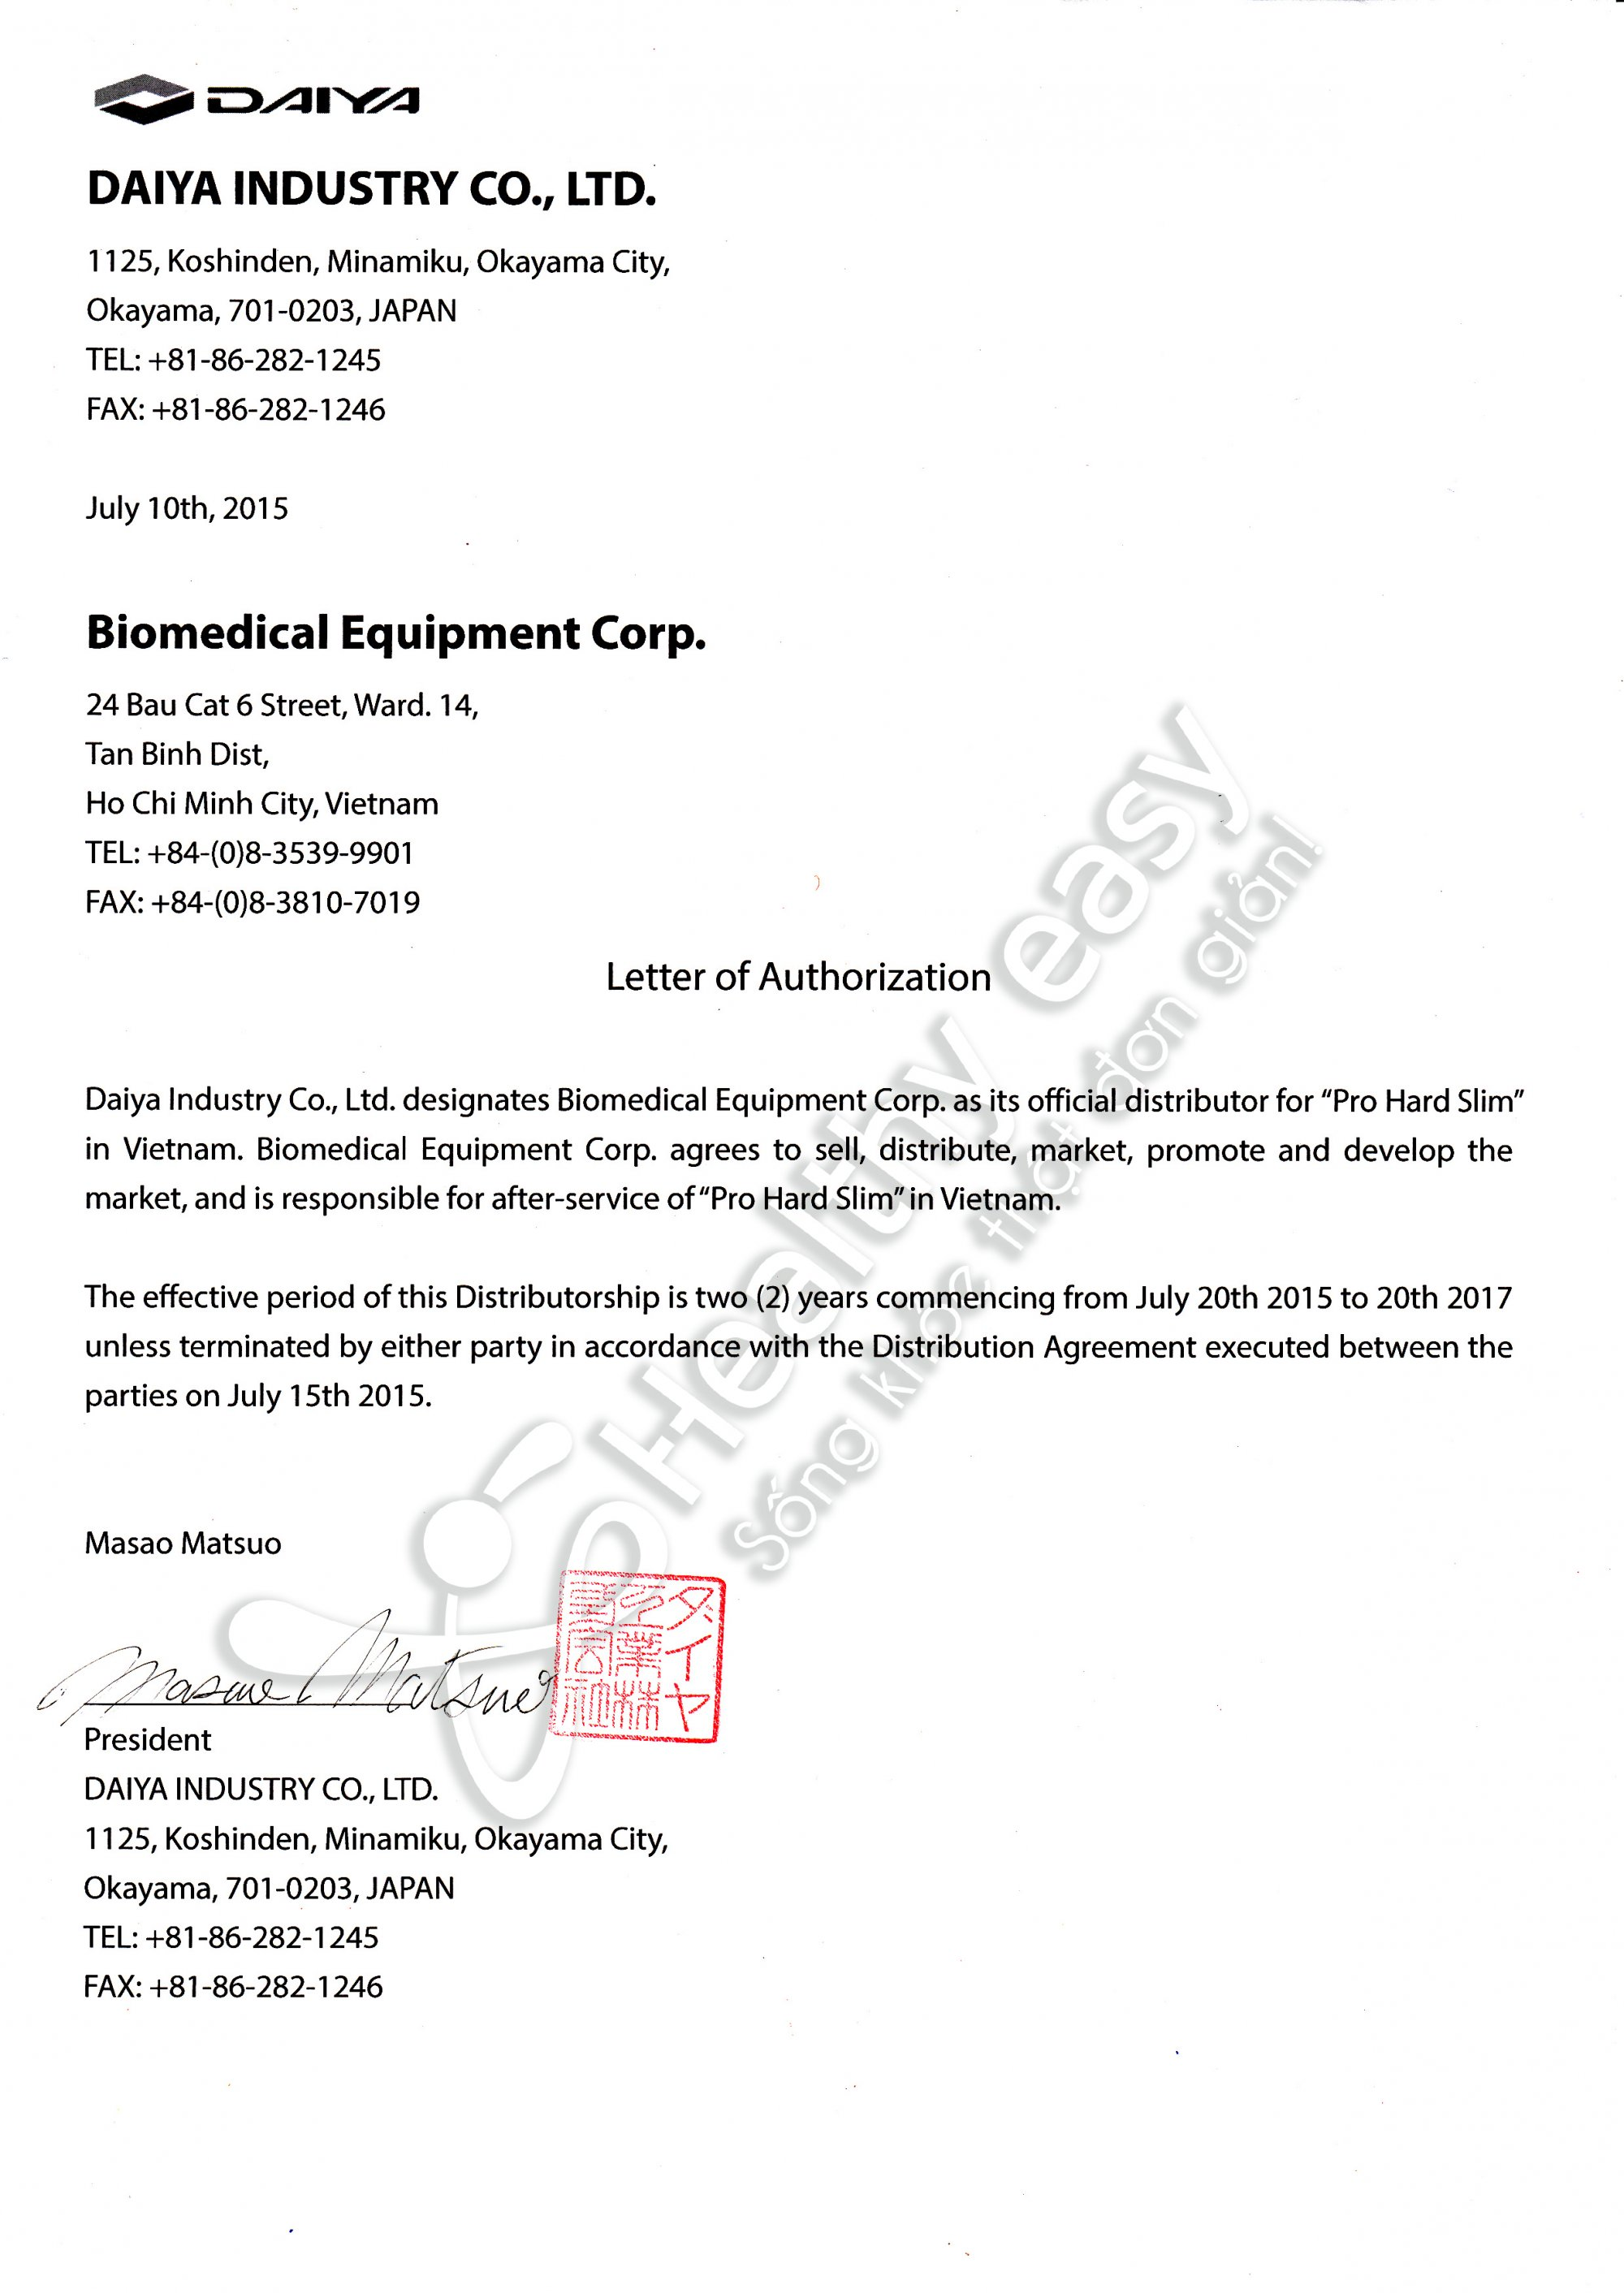 Letter_of_Authorization_DAIYA_Industry_CO.LTD